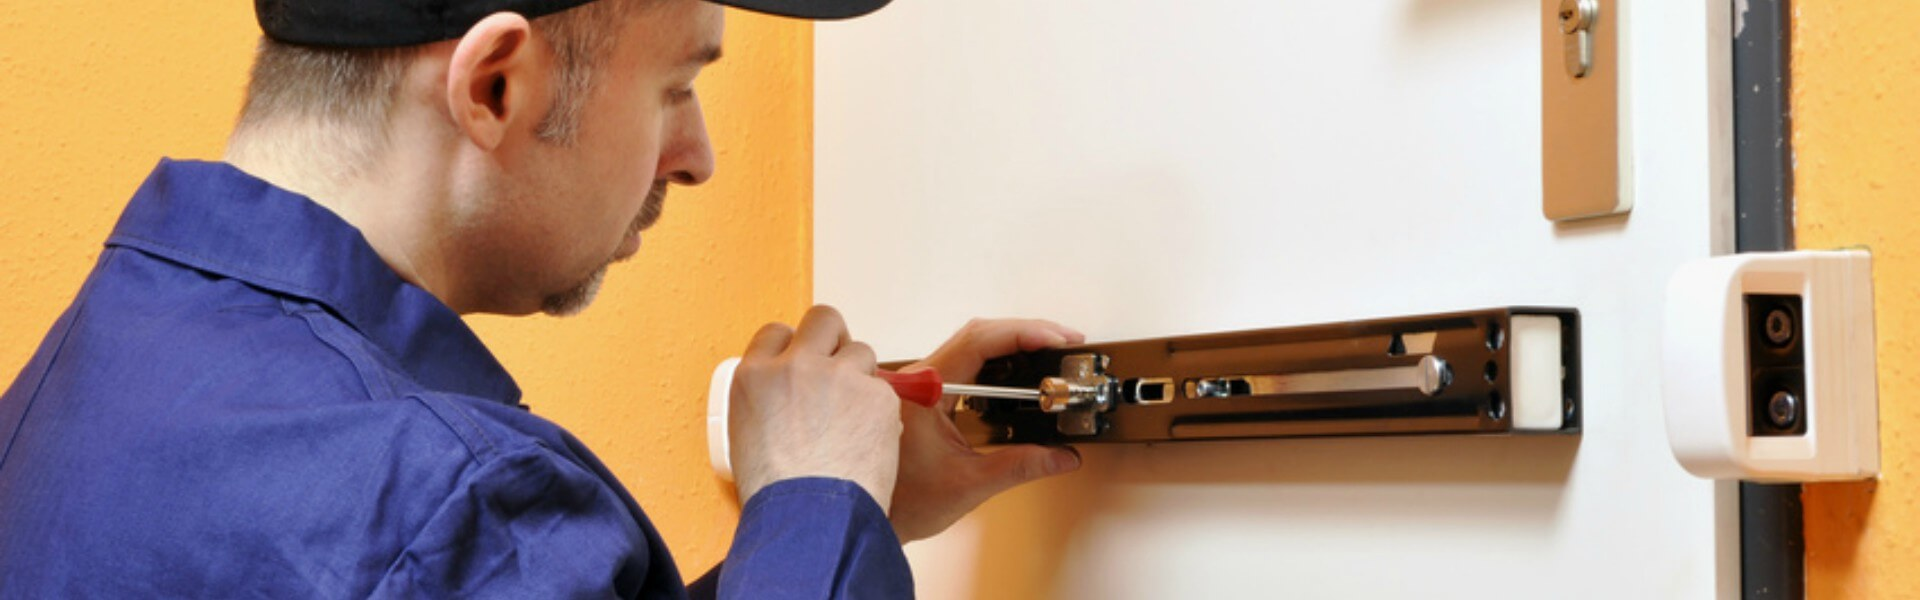 24-hour locksmiths in Georgetown Texas - Georgetown Locksmith Pros